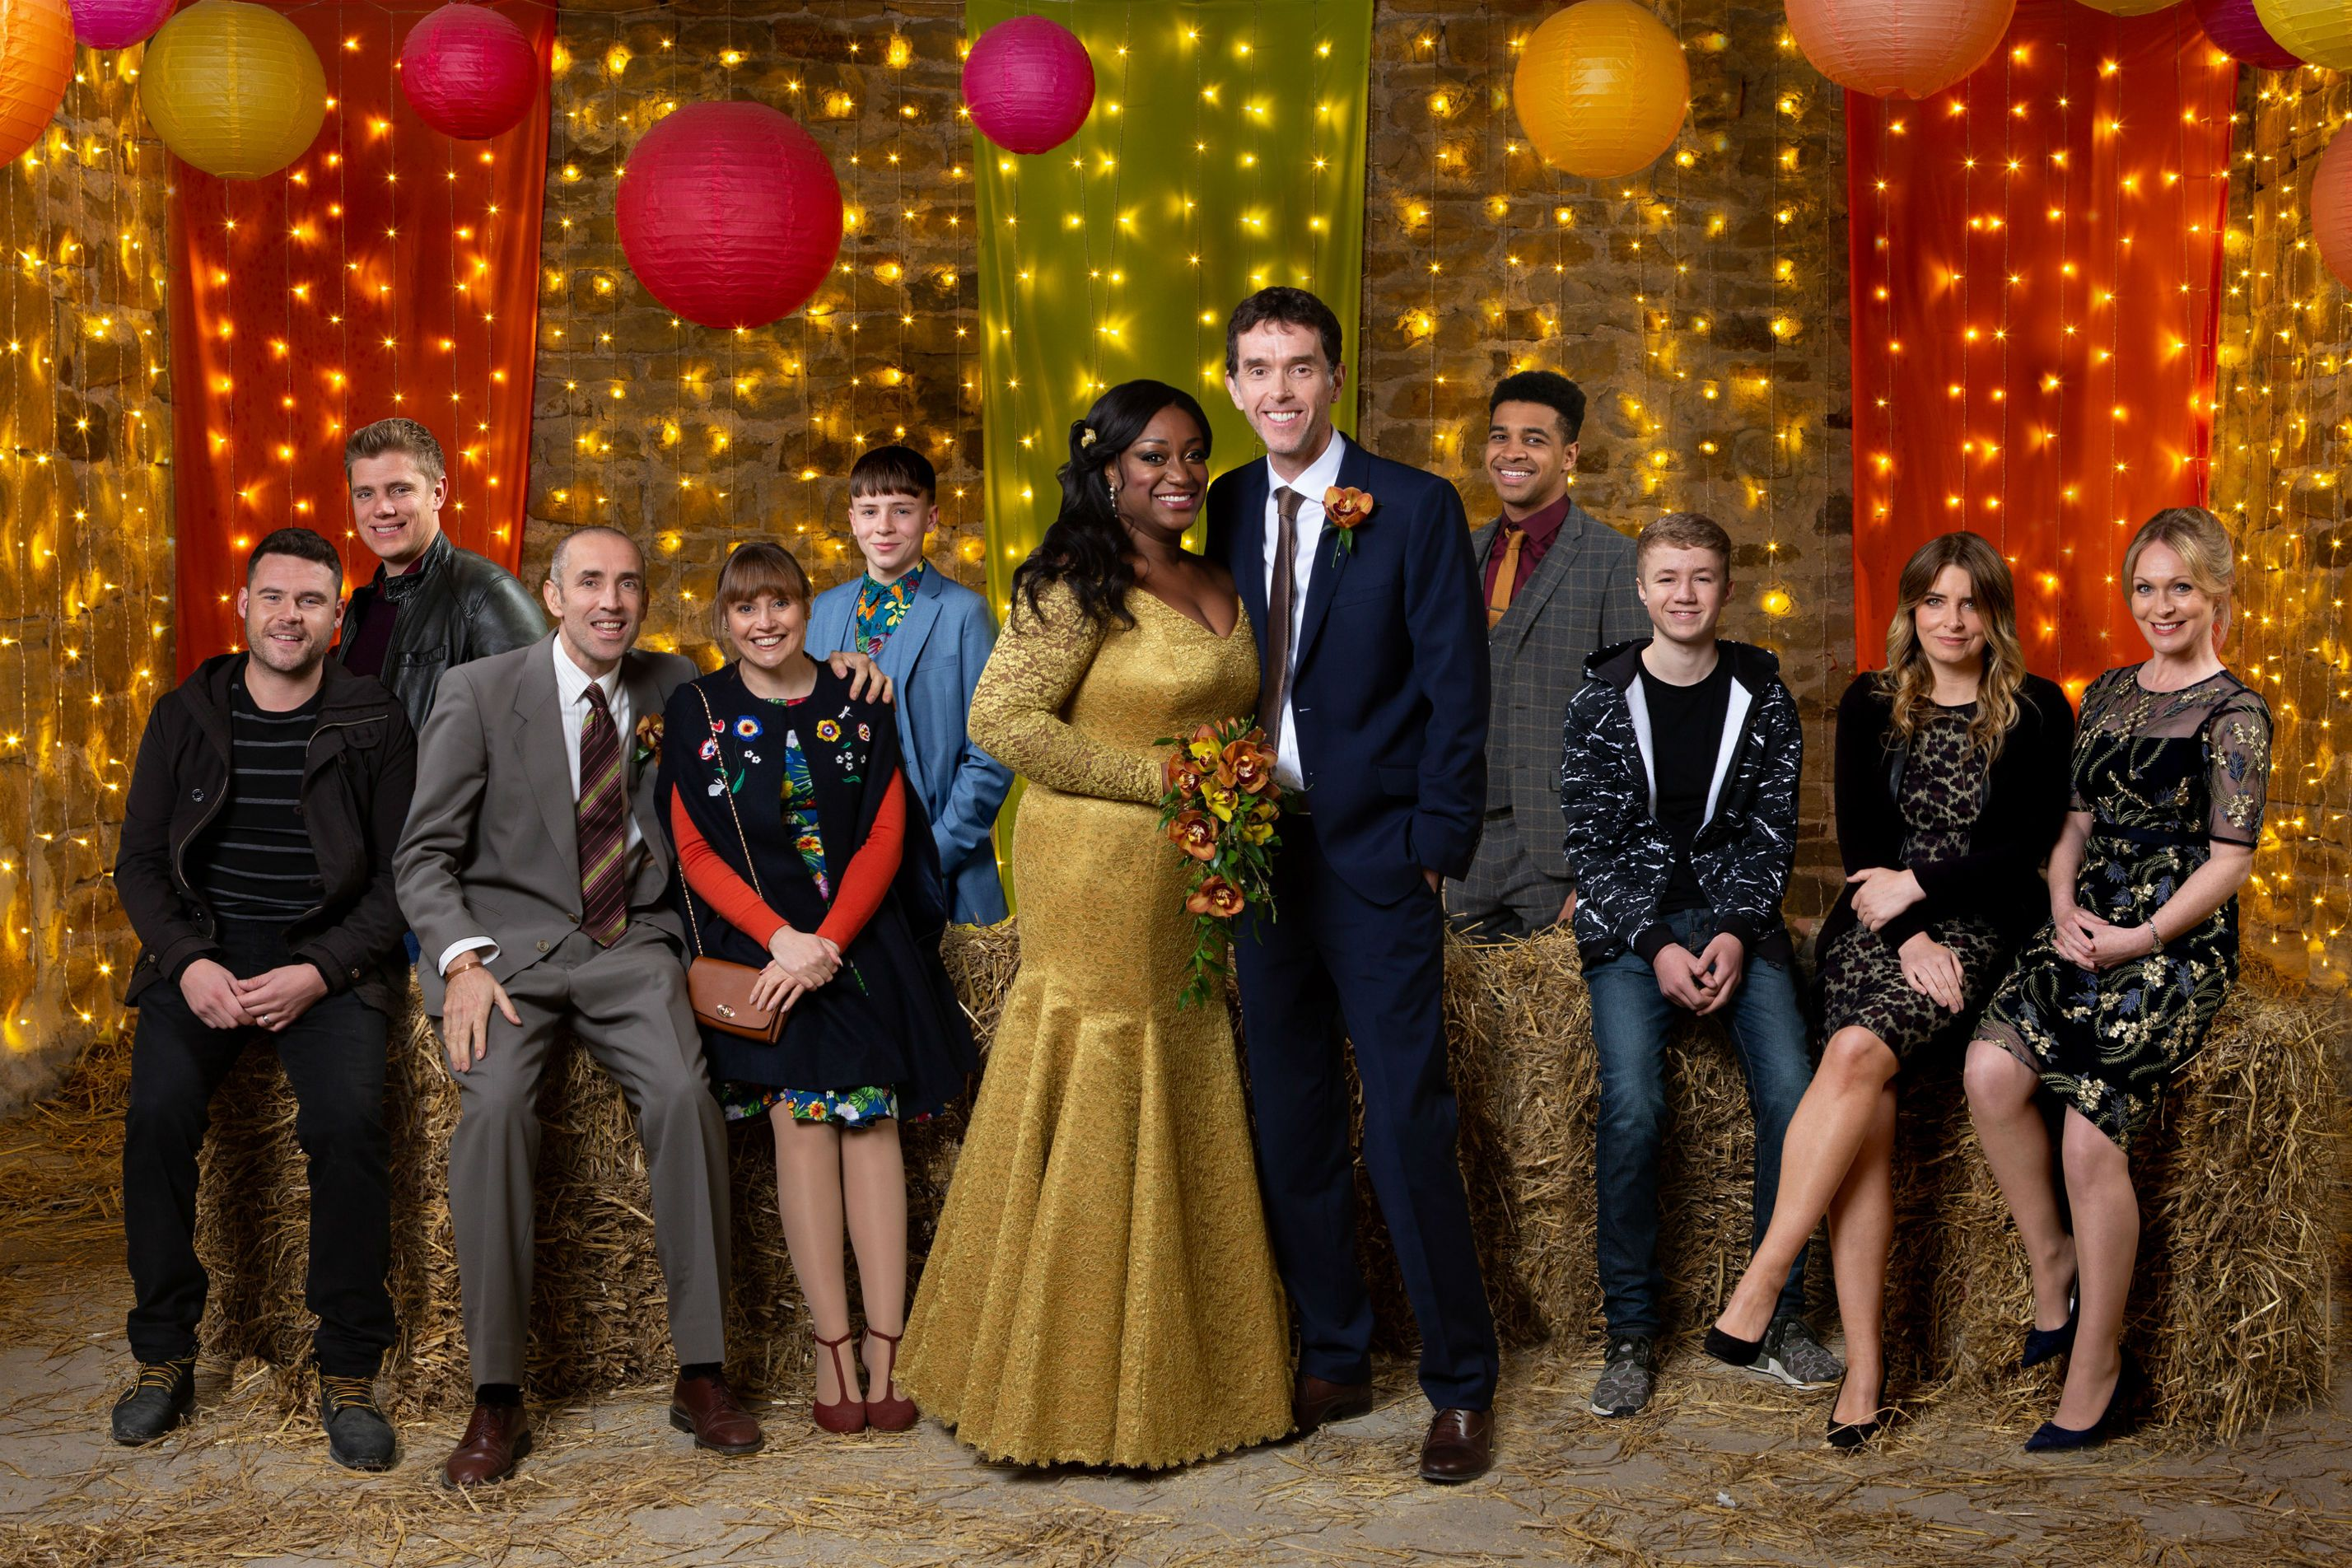 Jessie Grant and Marlon Dingle take centre stage in Emmerdale's Christmas episodes